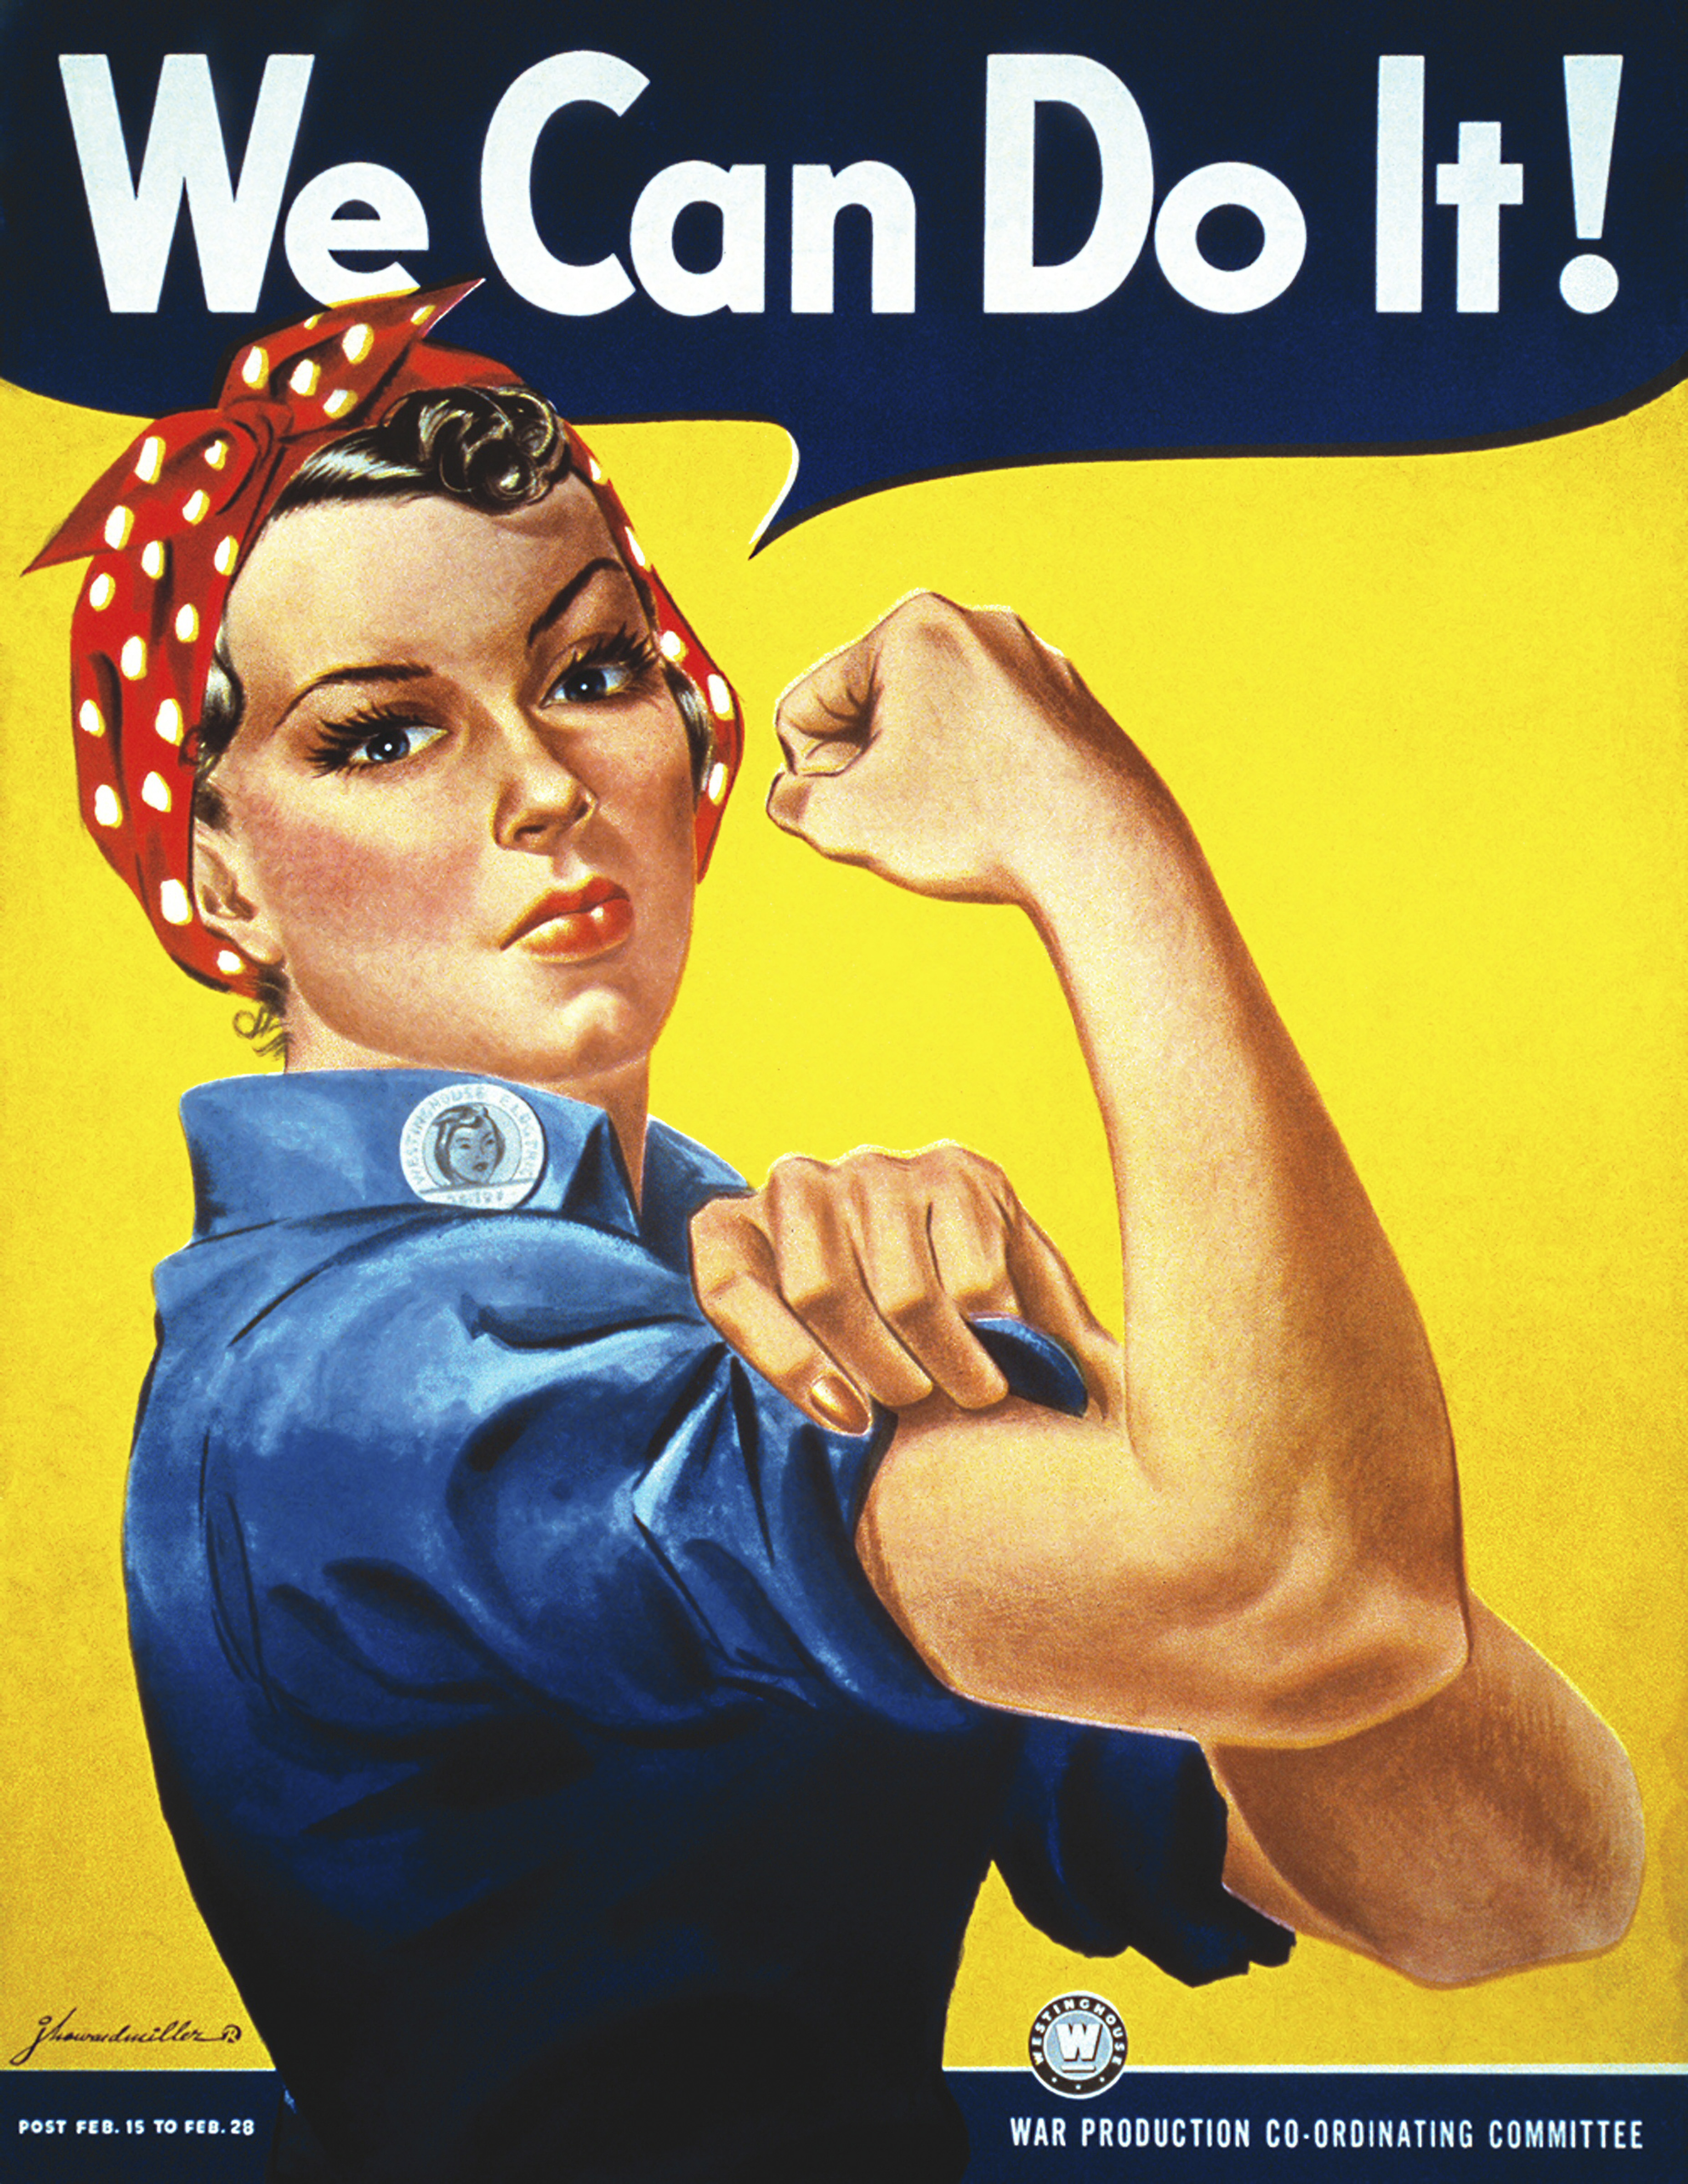 """Poster of Rosie the Riveter, who has her sleeves rolled up and is flexing her bicep, with a speech bubble saying, """"We can do it!"""""""